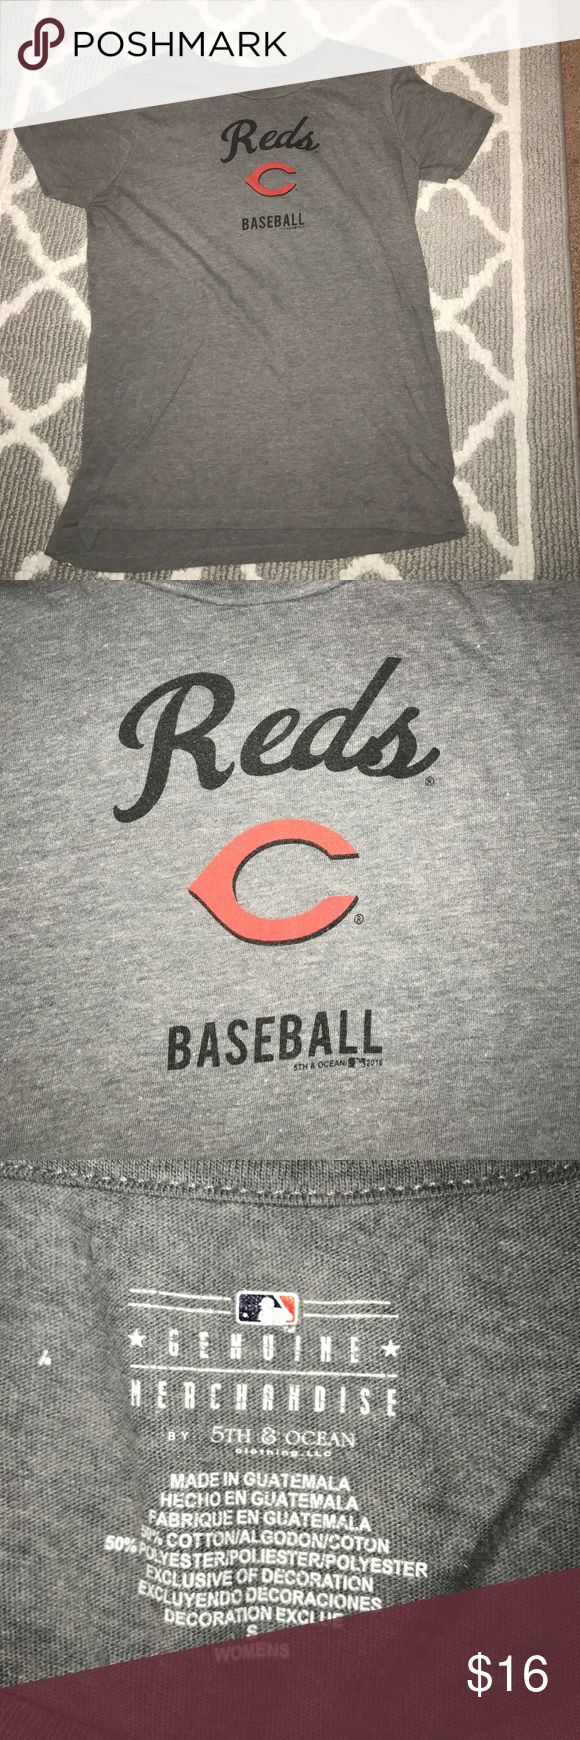 Cincinnati Reds Baseball Tee, Women's Small Authentic MLB merchandise, only worn a couple times, and soft! Old Navy Tops Tees - Short Sleeve